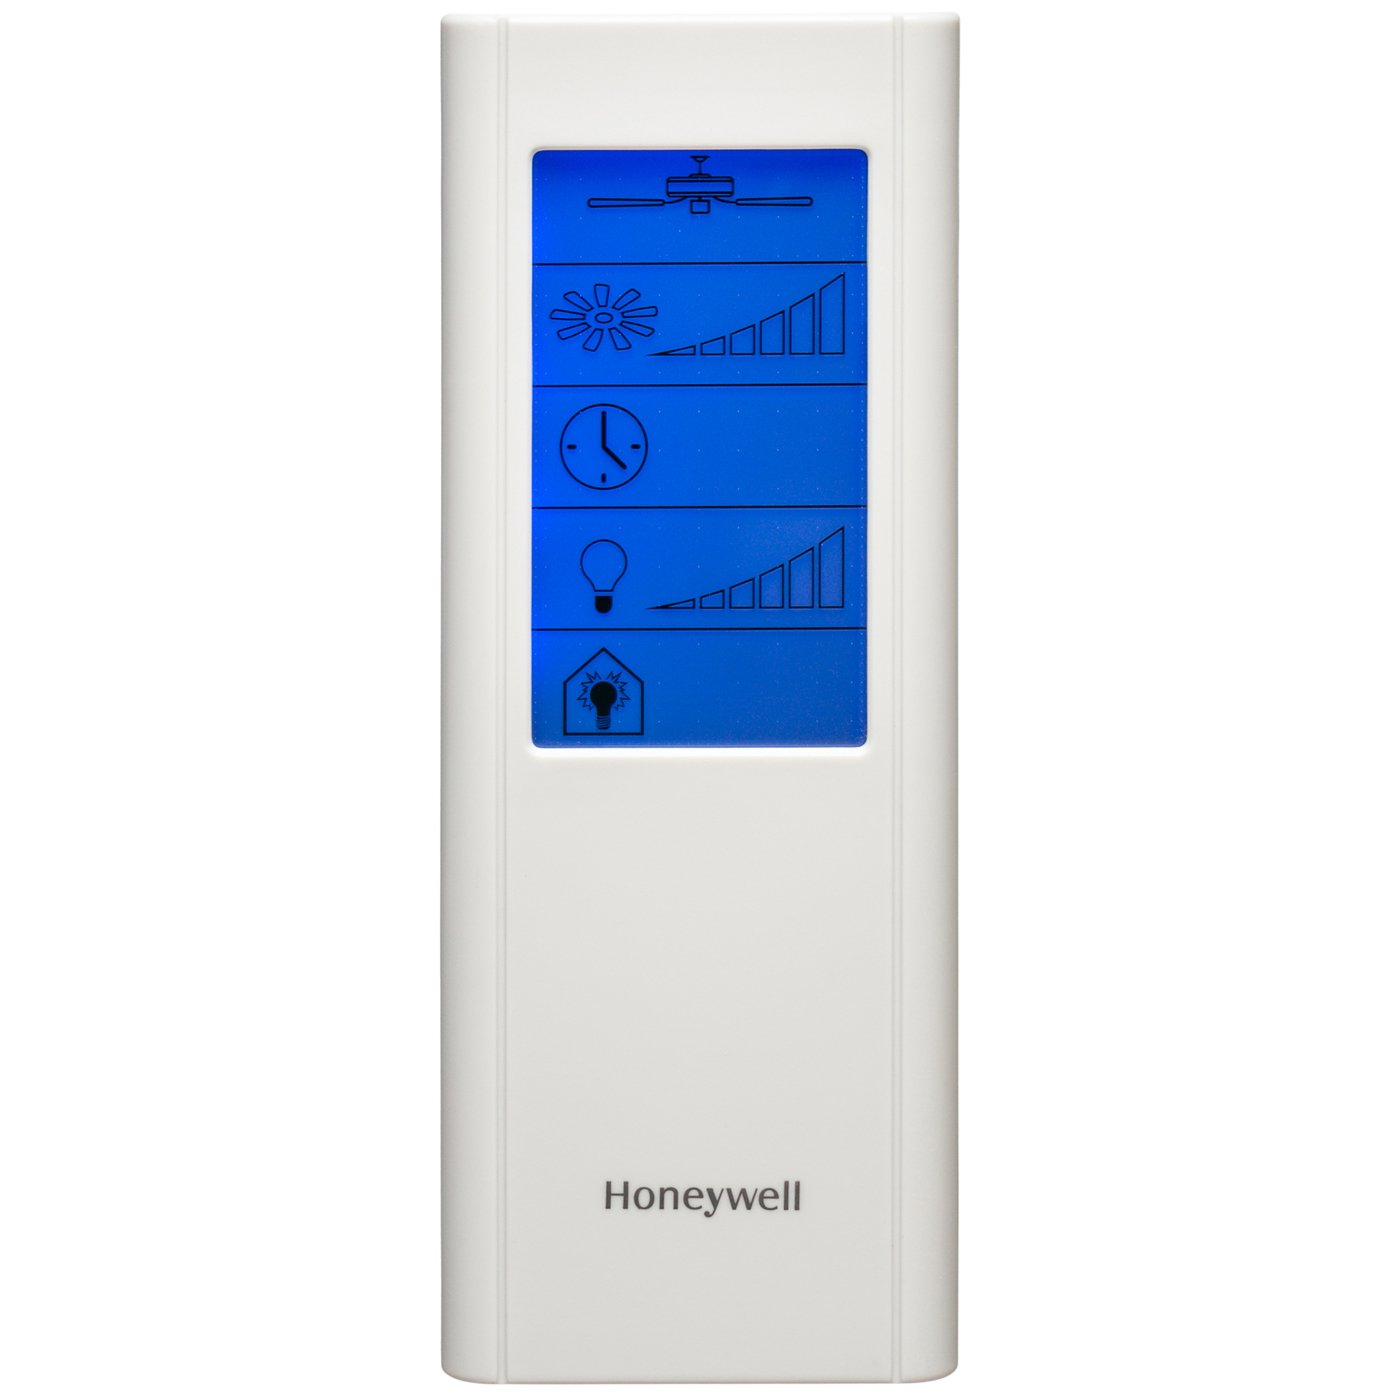 Honeywell Ceiling Fans 40013-01 LCD Touch Screen Universal Remote Control for Ceiling Fans Cream by Honeywell Ceiling Fans (Image #1)